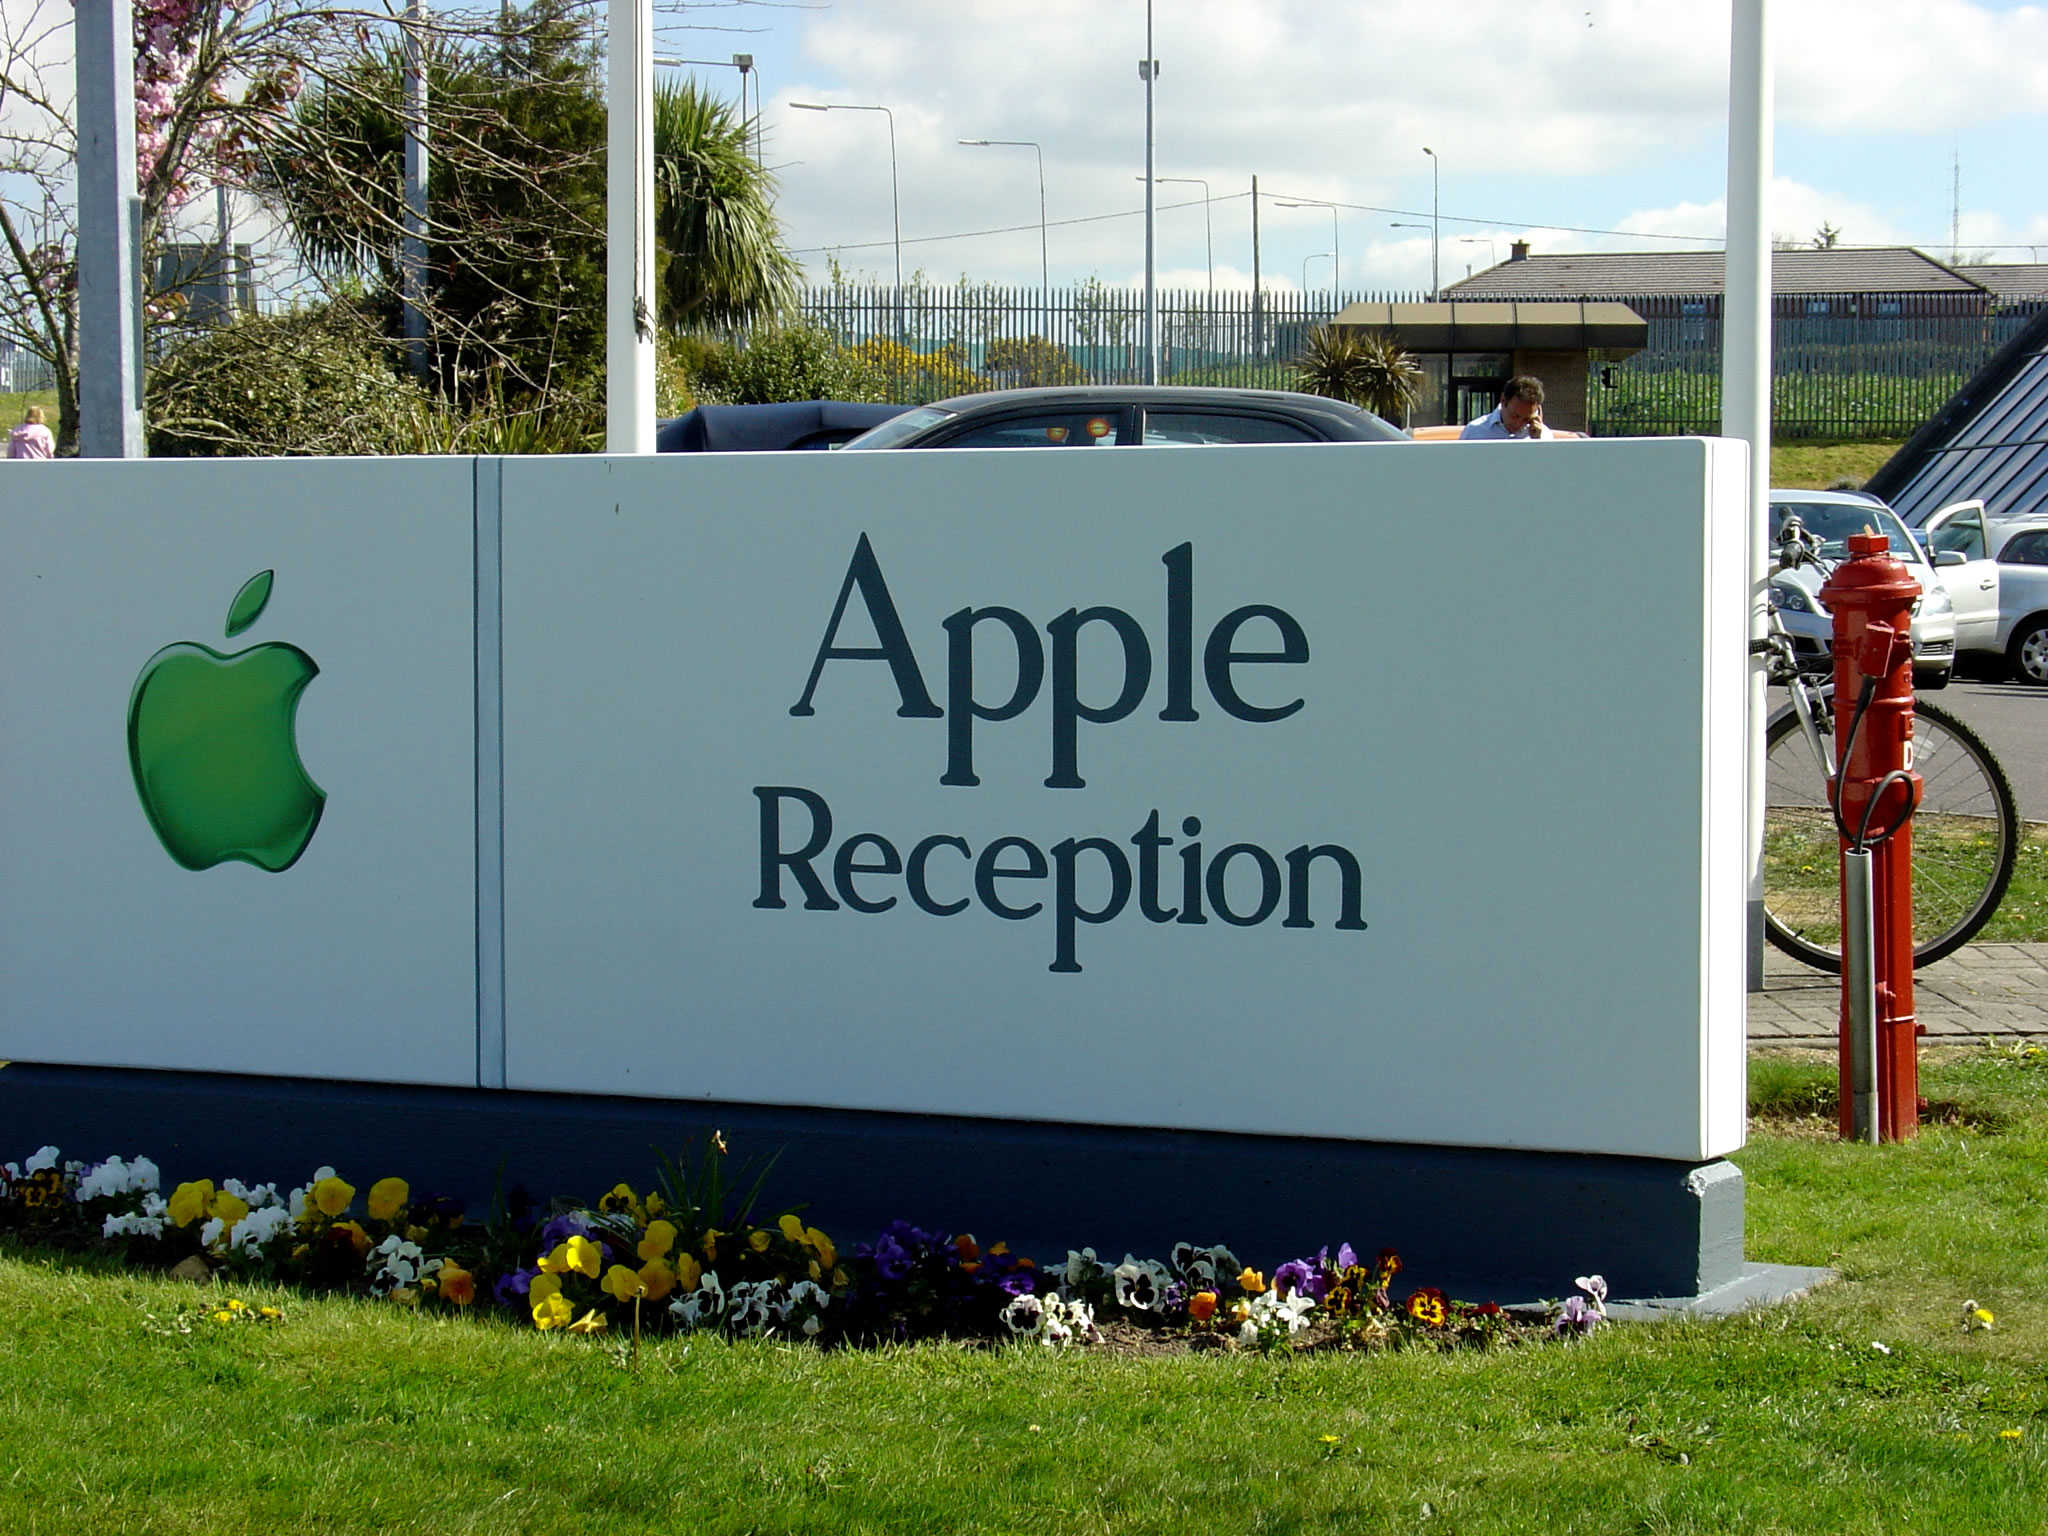 Apple's headquarters in Cork, Ireland.